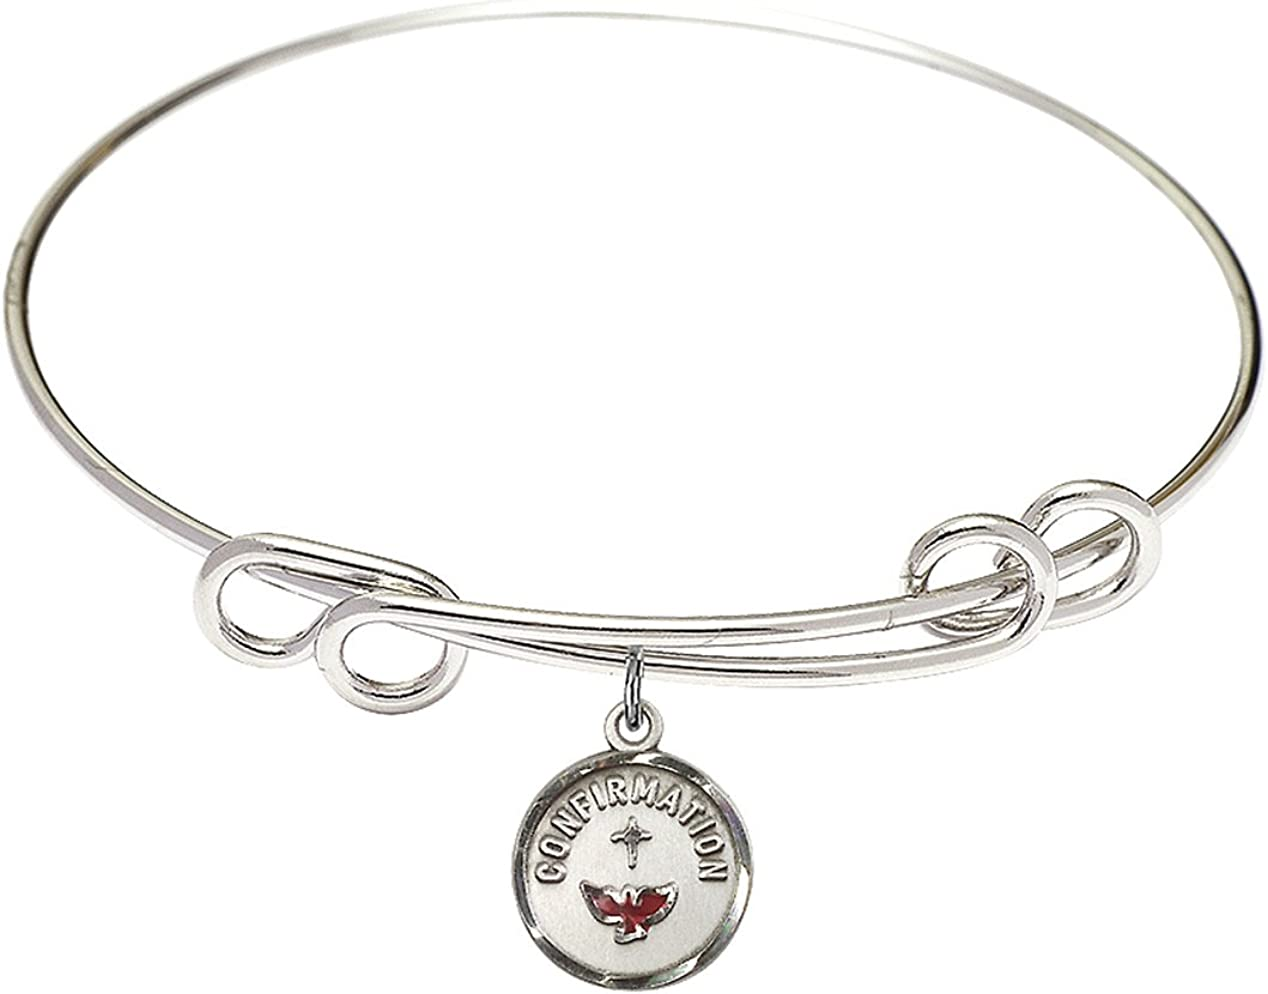 F A Dumont 8 1 Special Japan's largest assortment price for a limited time 2 inch Round with Bracelet Bangle C Loop Double